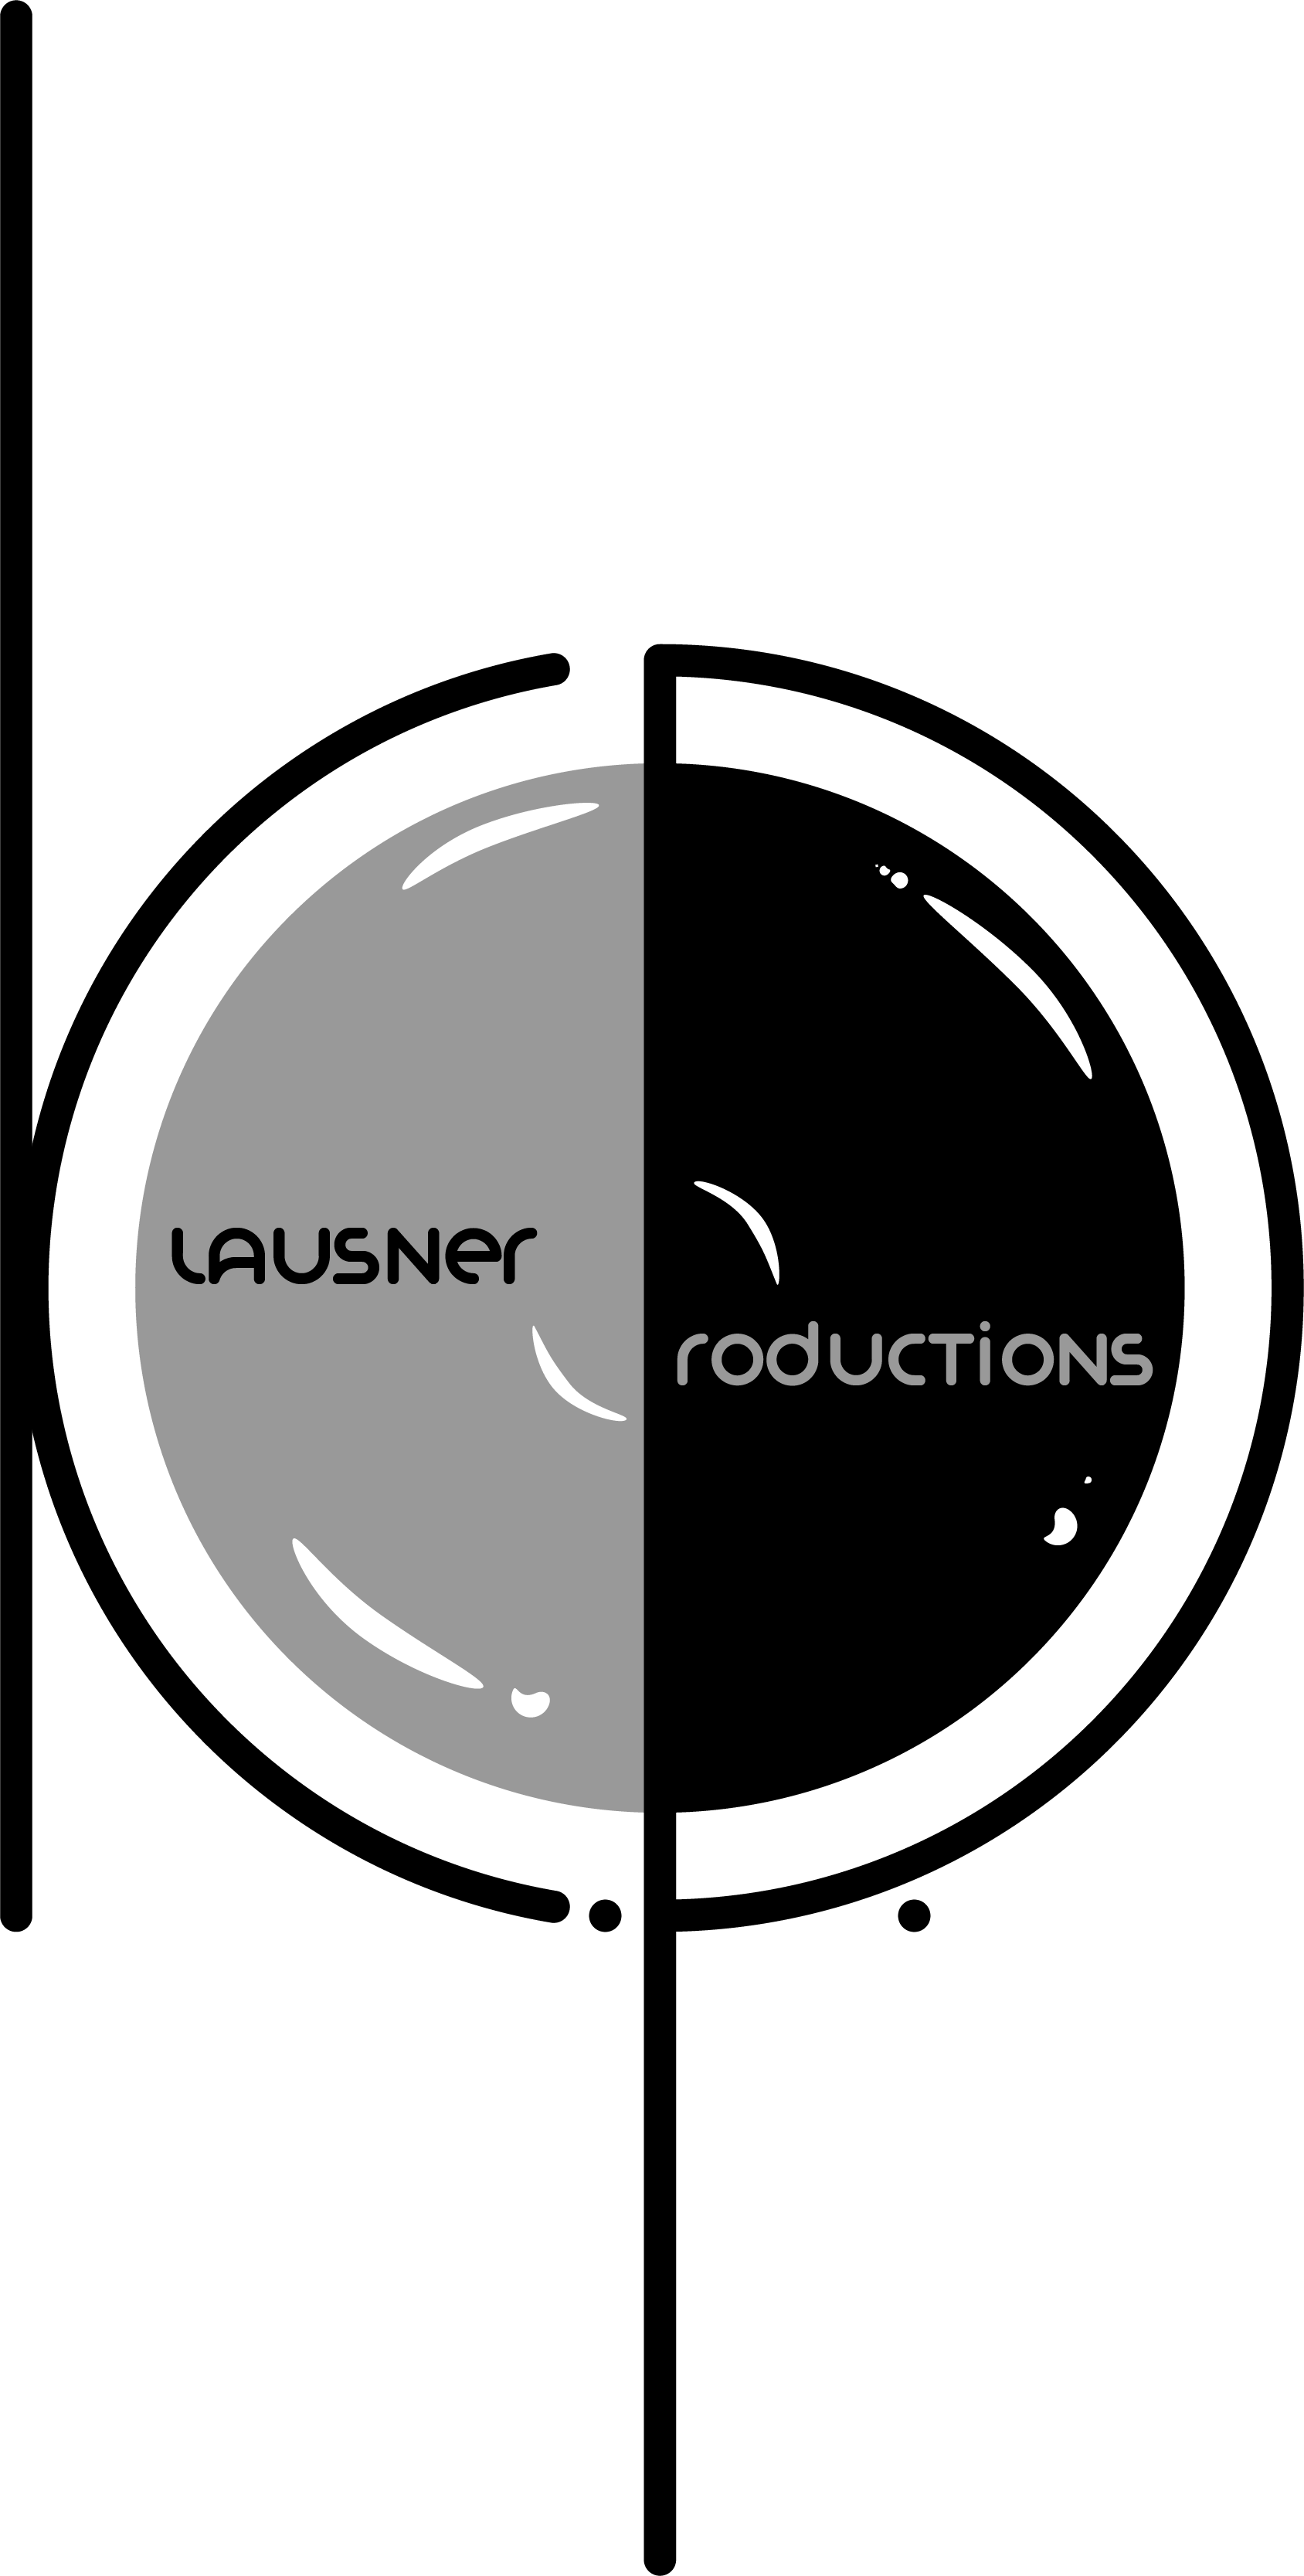 Klausner-Productions